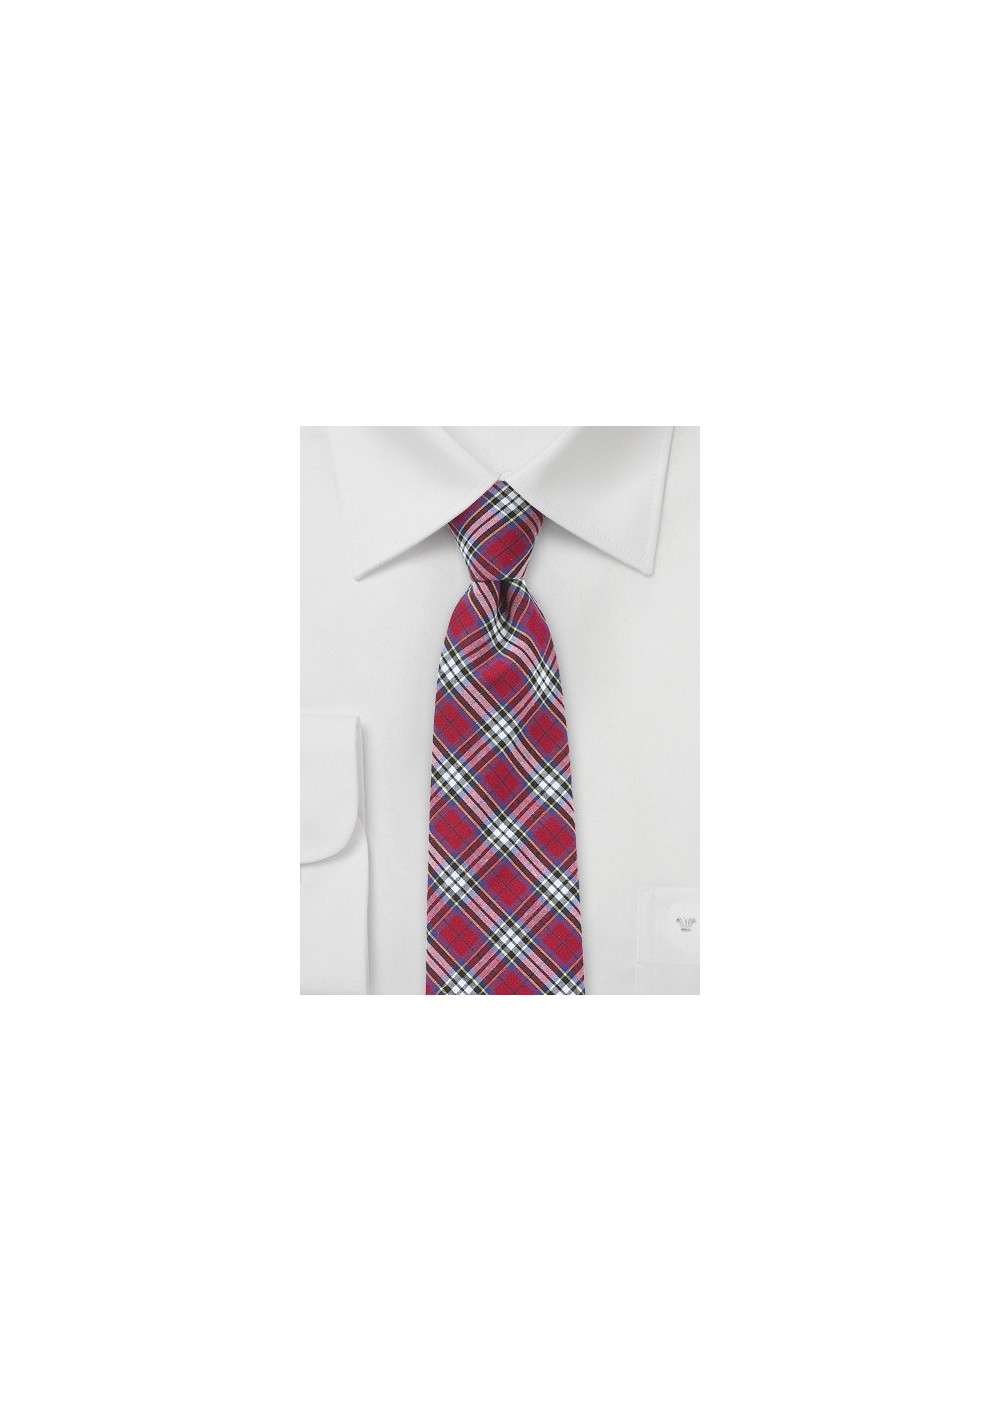 Cotton Plaid Tie in Red, Blue, Yellow, White